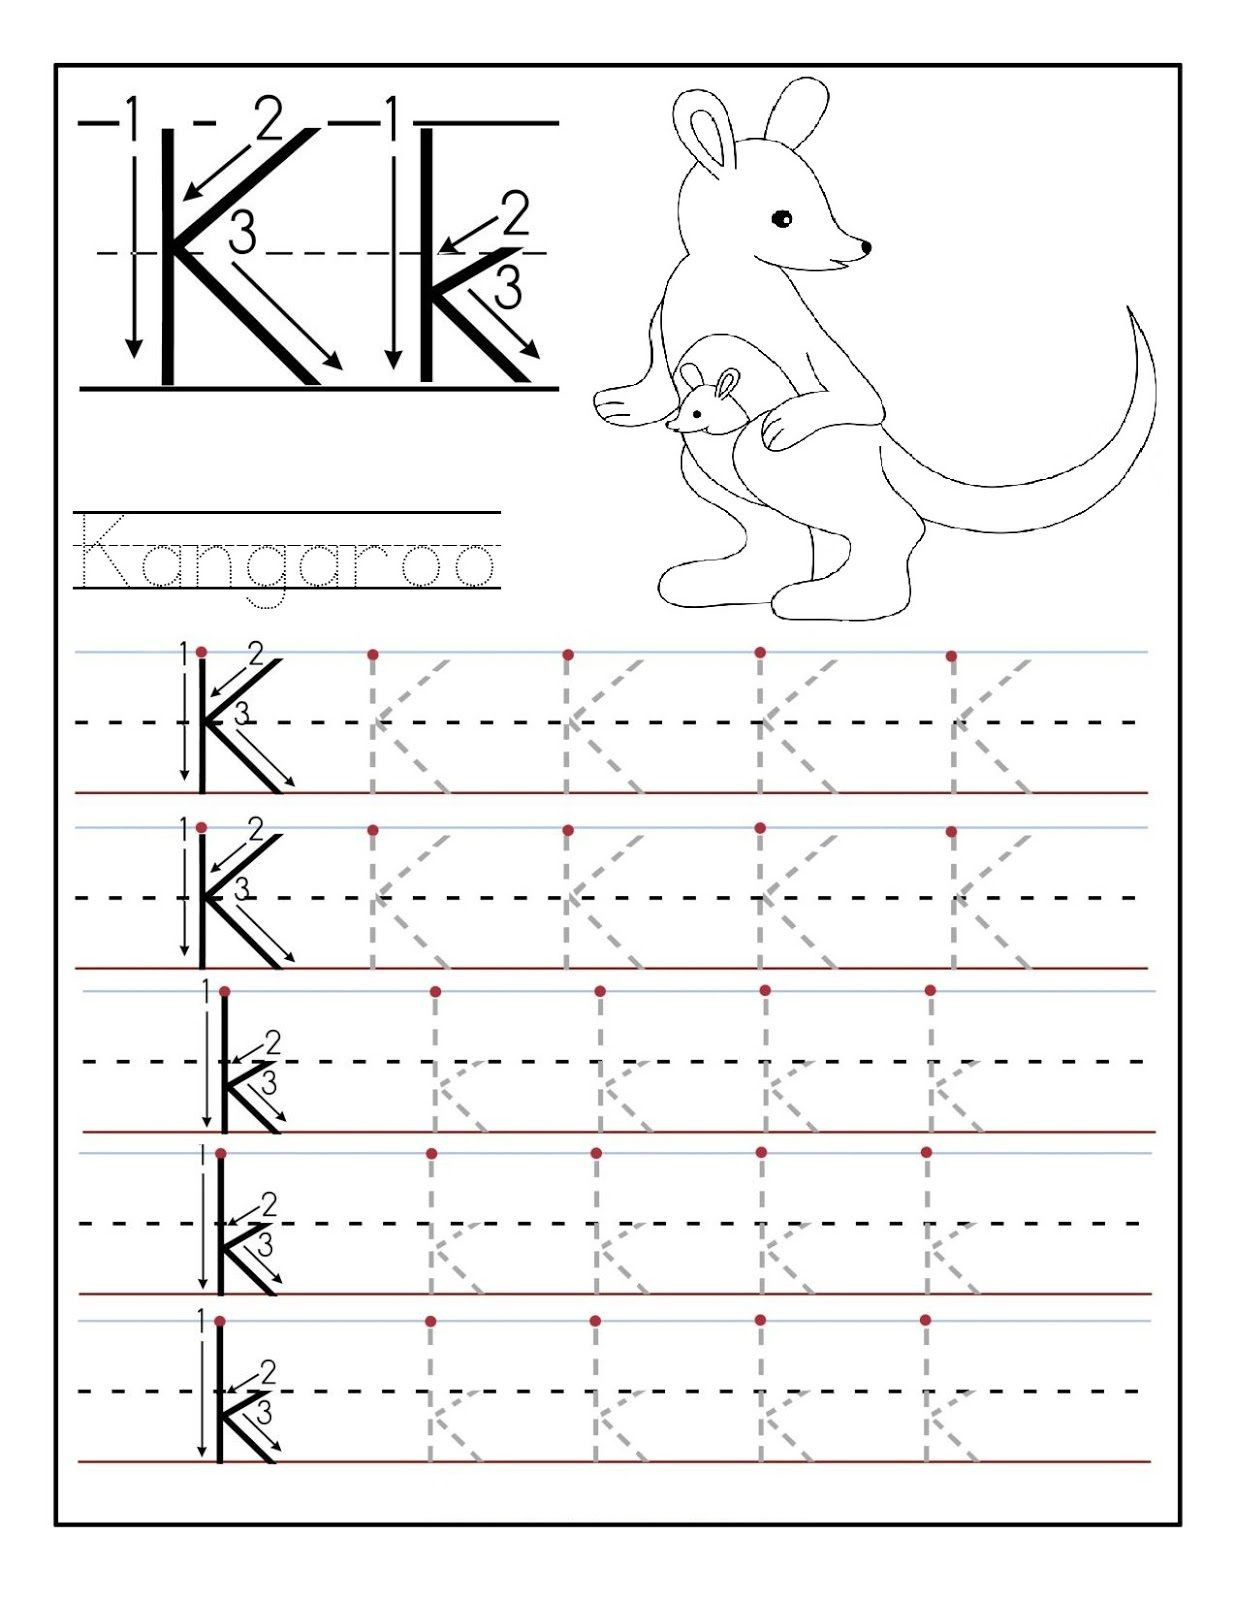 Letter N Preschool Worksheets Letter N Worksheets for Preschool and Kinderg…